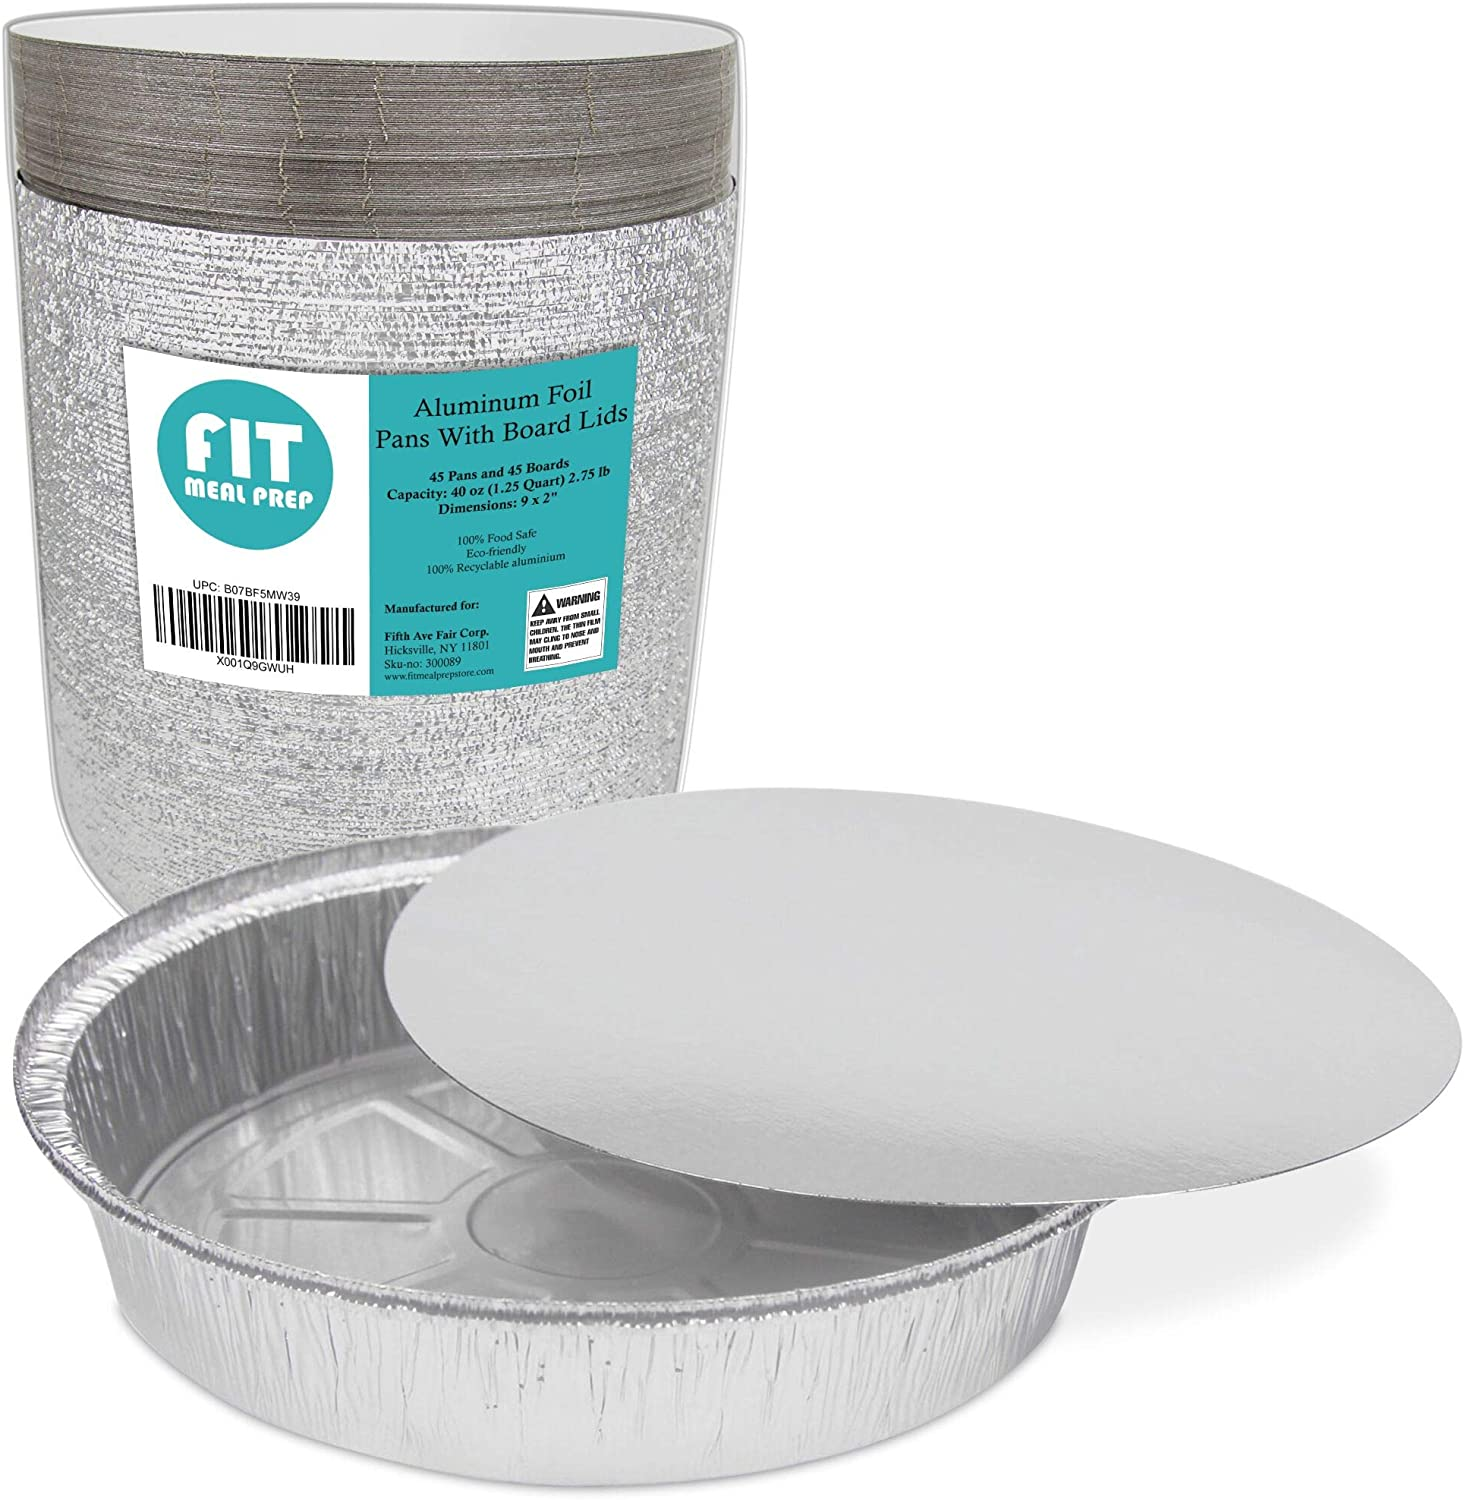 50 Pack 9 Inch Disposable Round Aluminum Foil Take-Out Pans with Plastic Lids